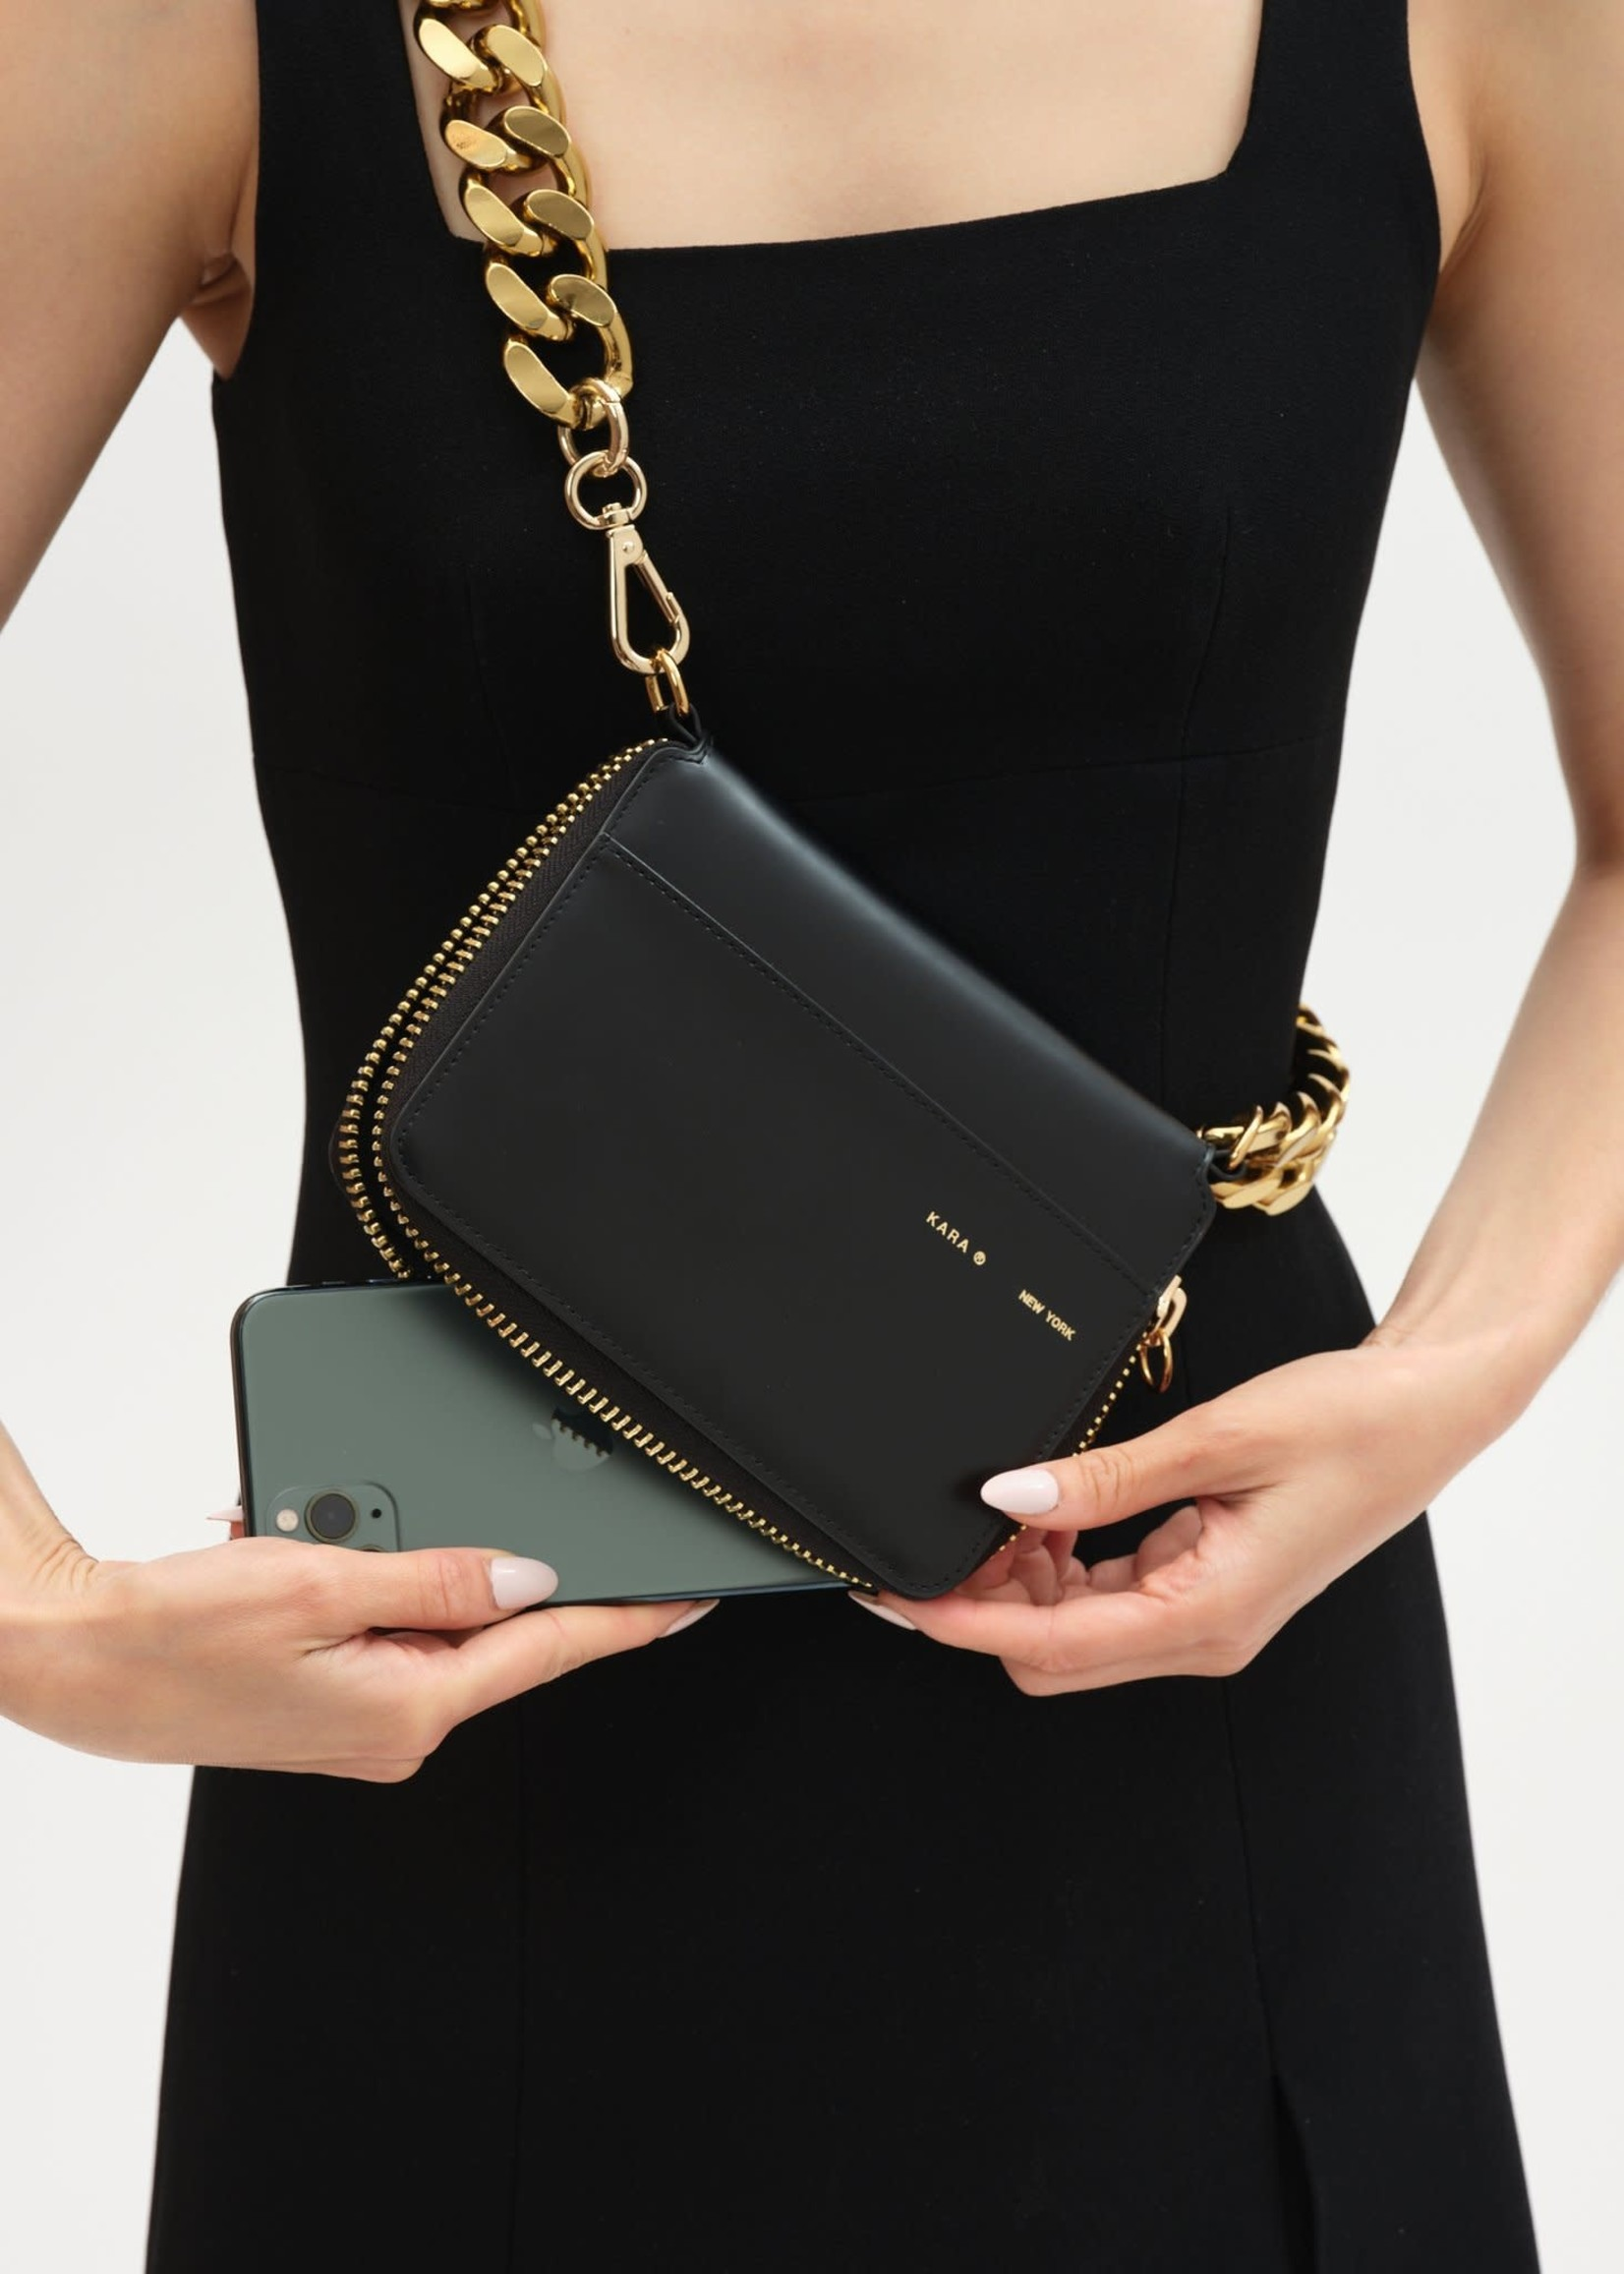 KARA Large Bike Wallet in Black with Gold Chain